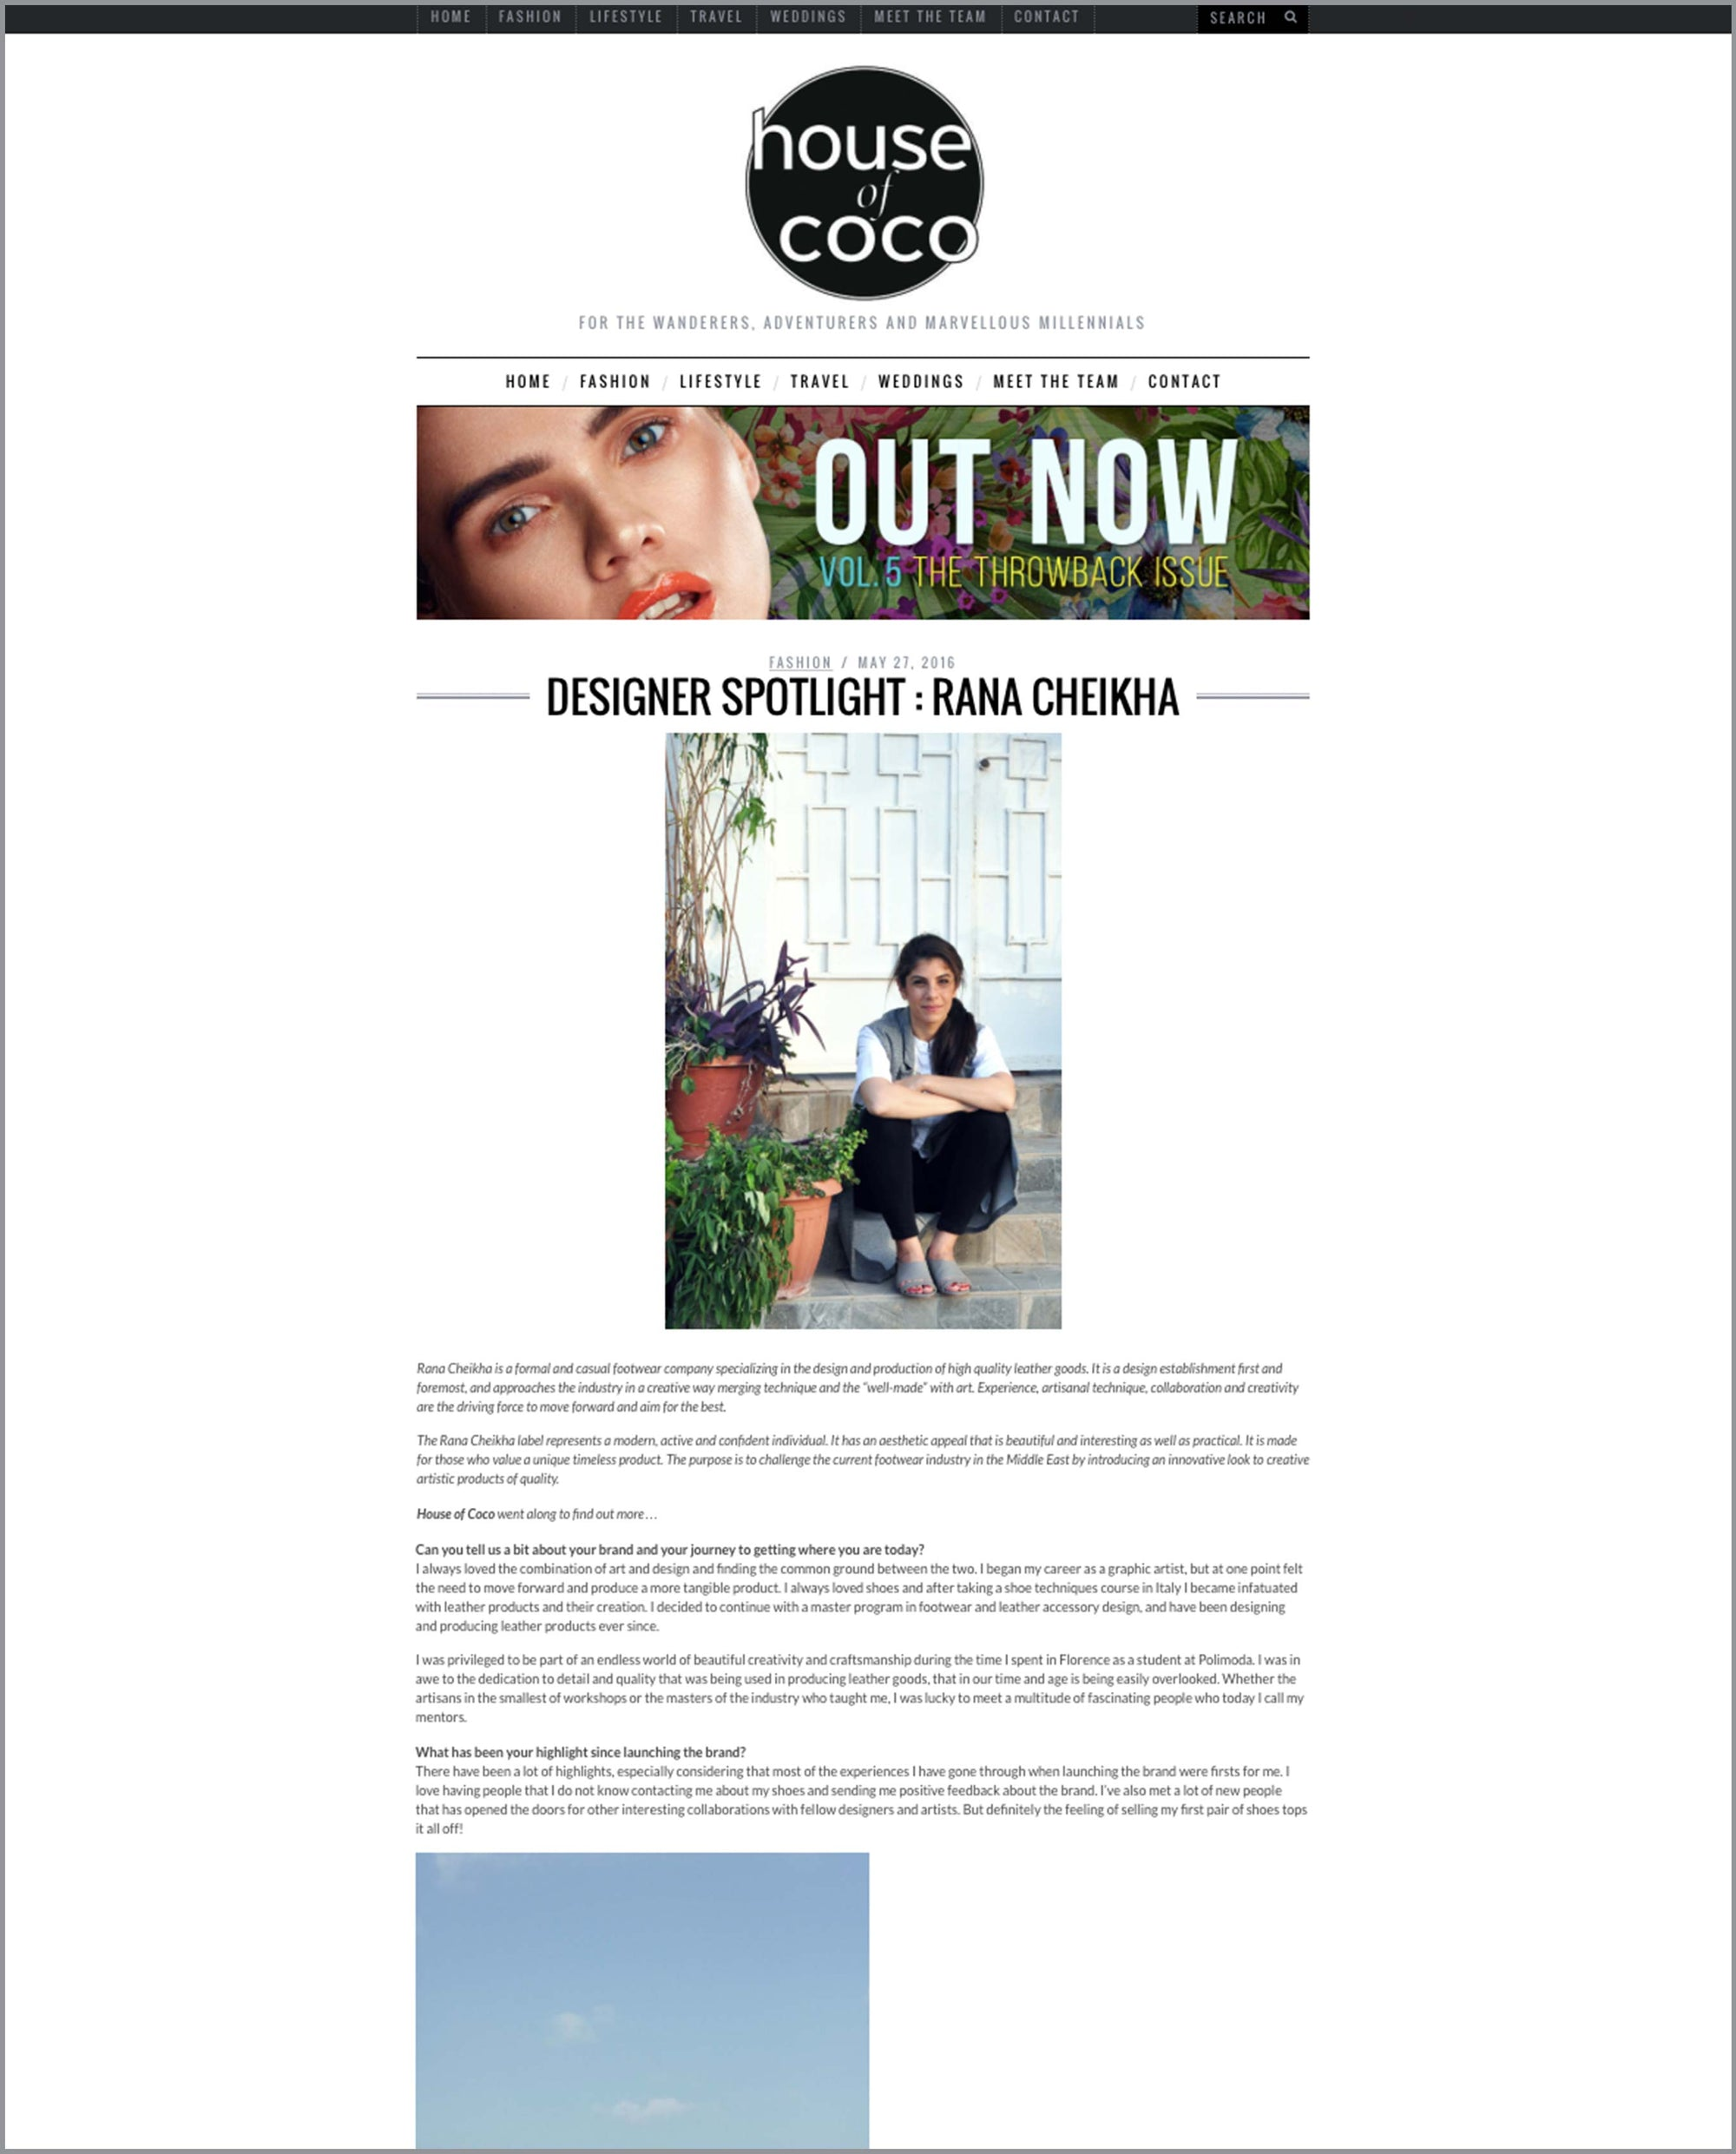 House of Coco Magazine ranacheikha